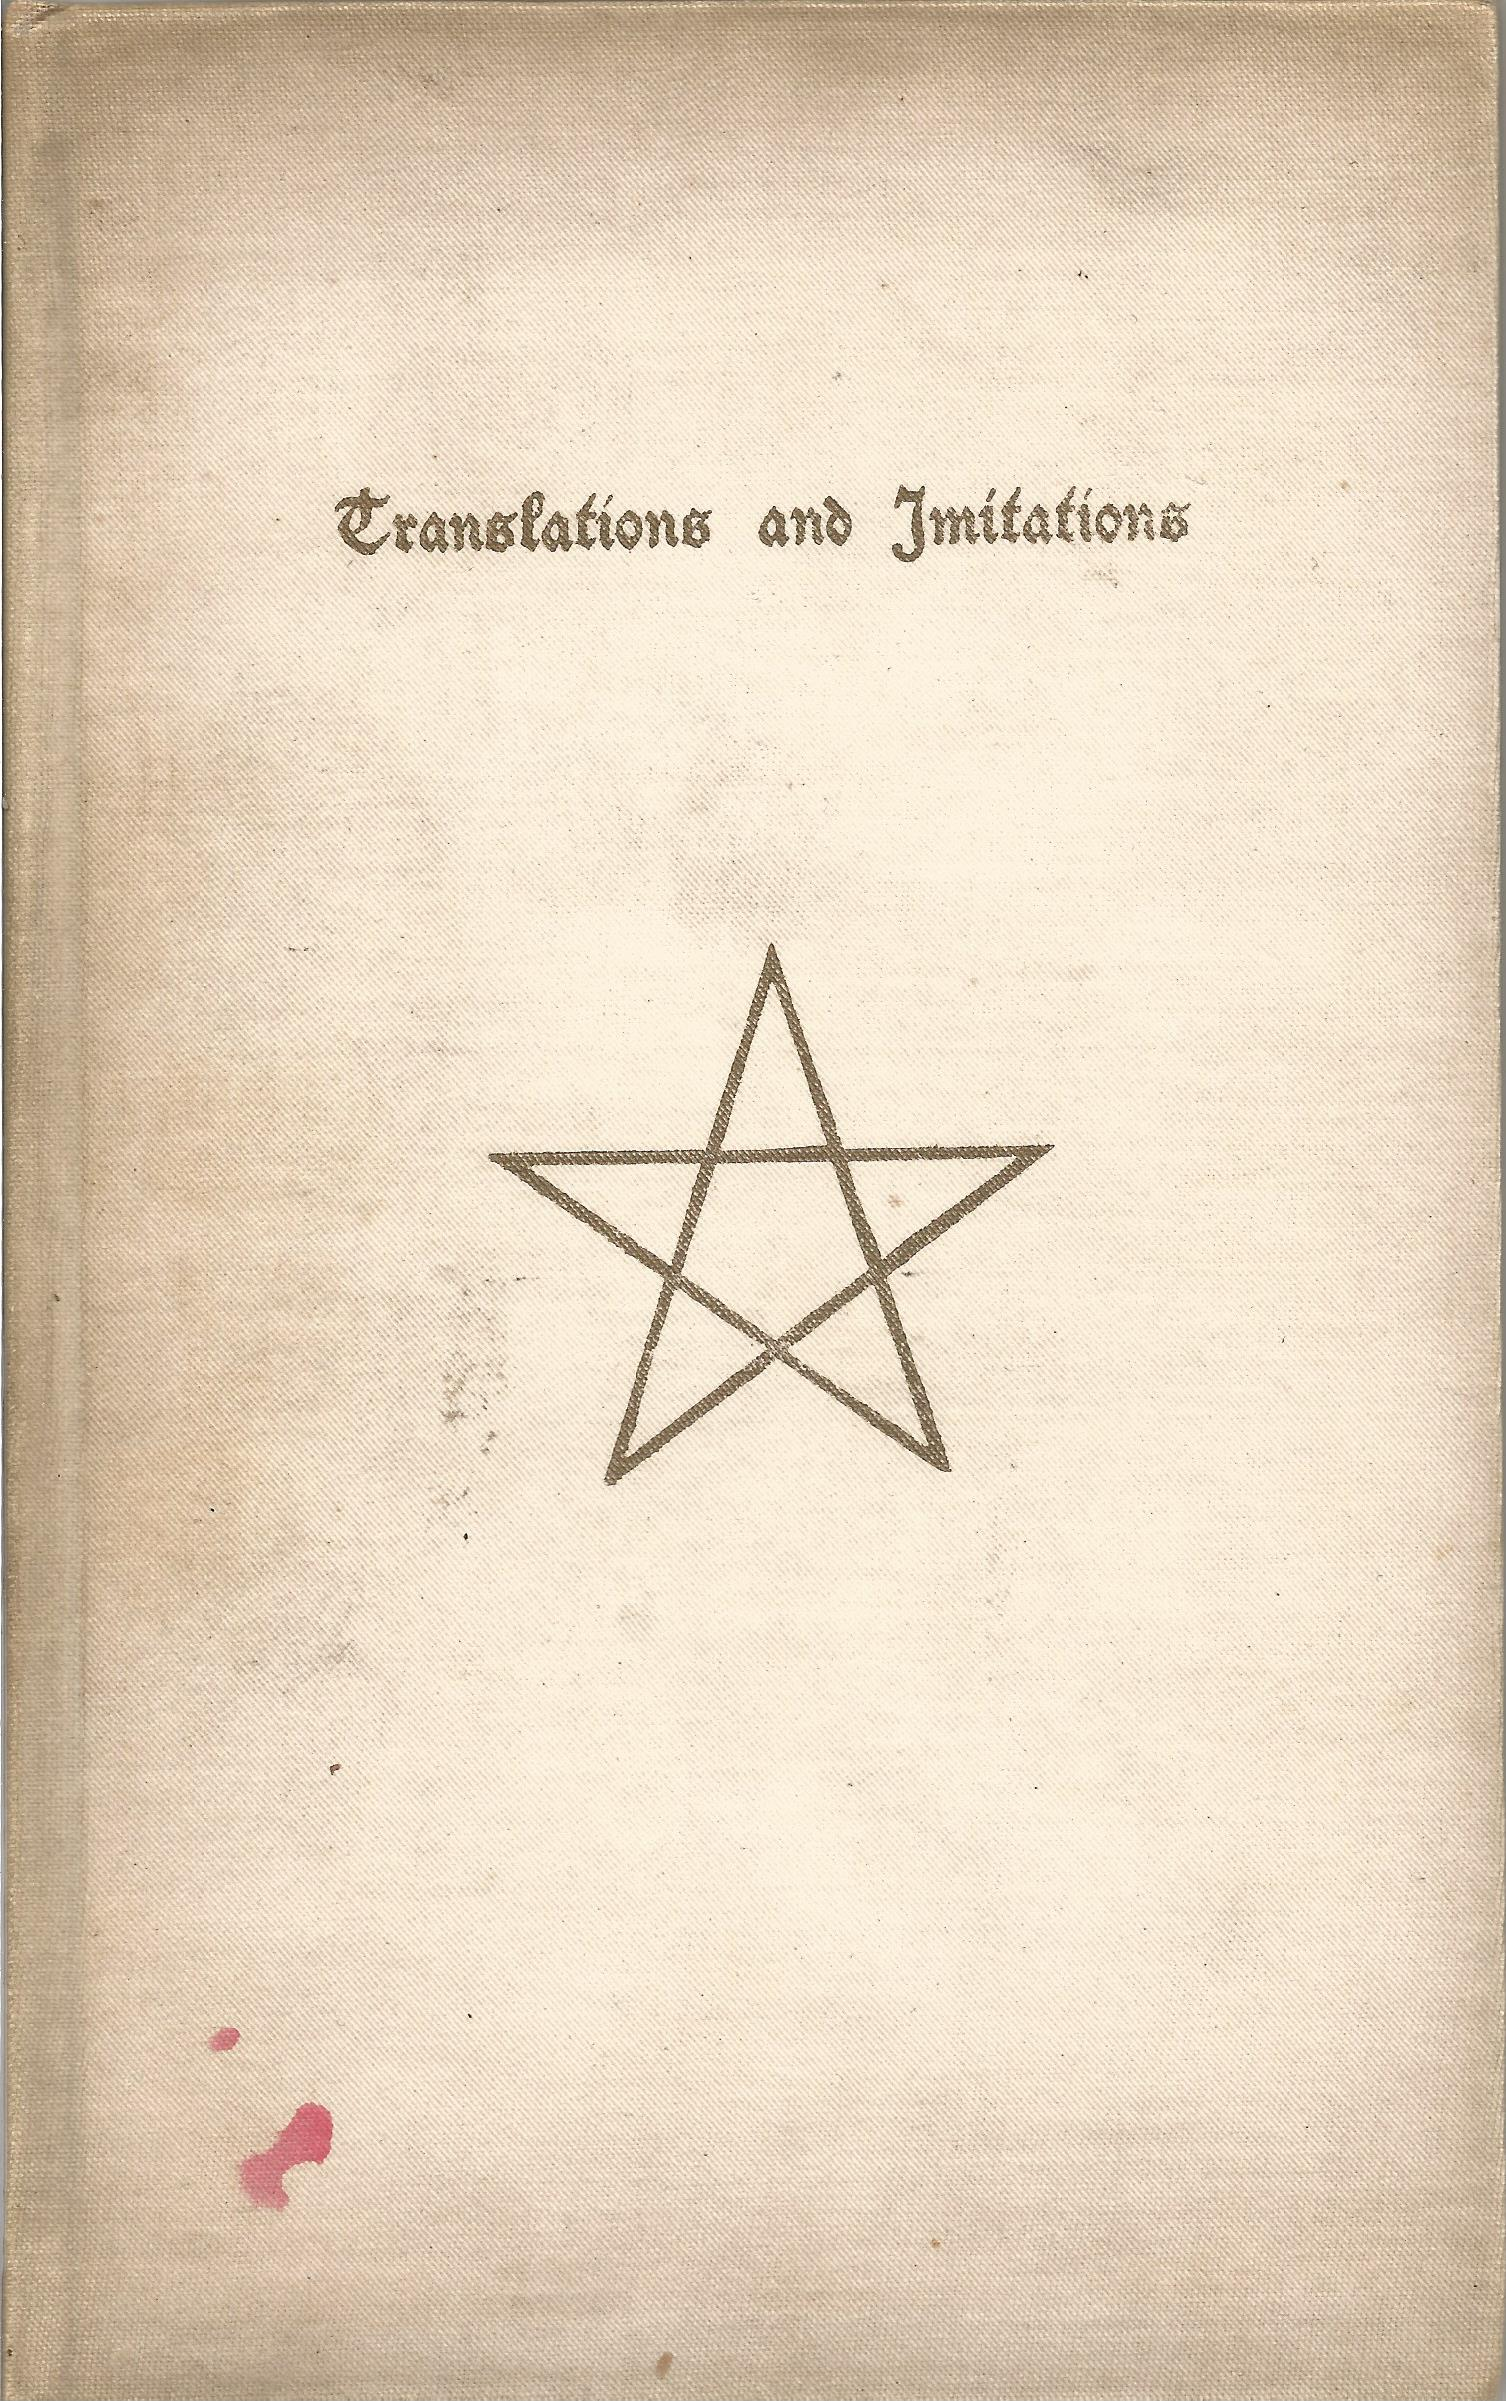 Translations and Imitations by Patch L B Courtney with initialled inscription LBC dated 1892,